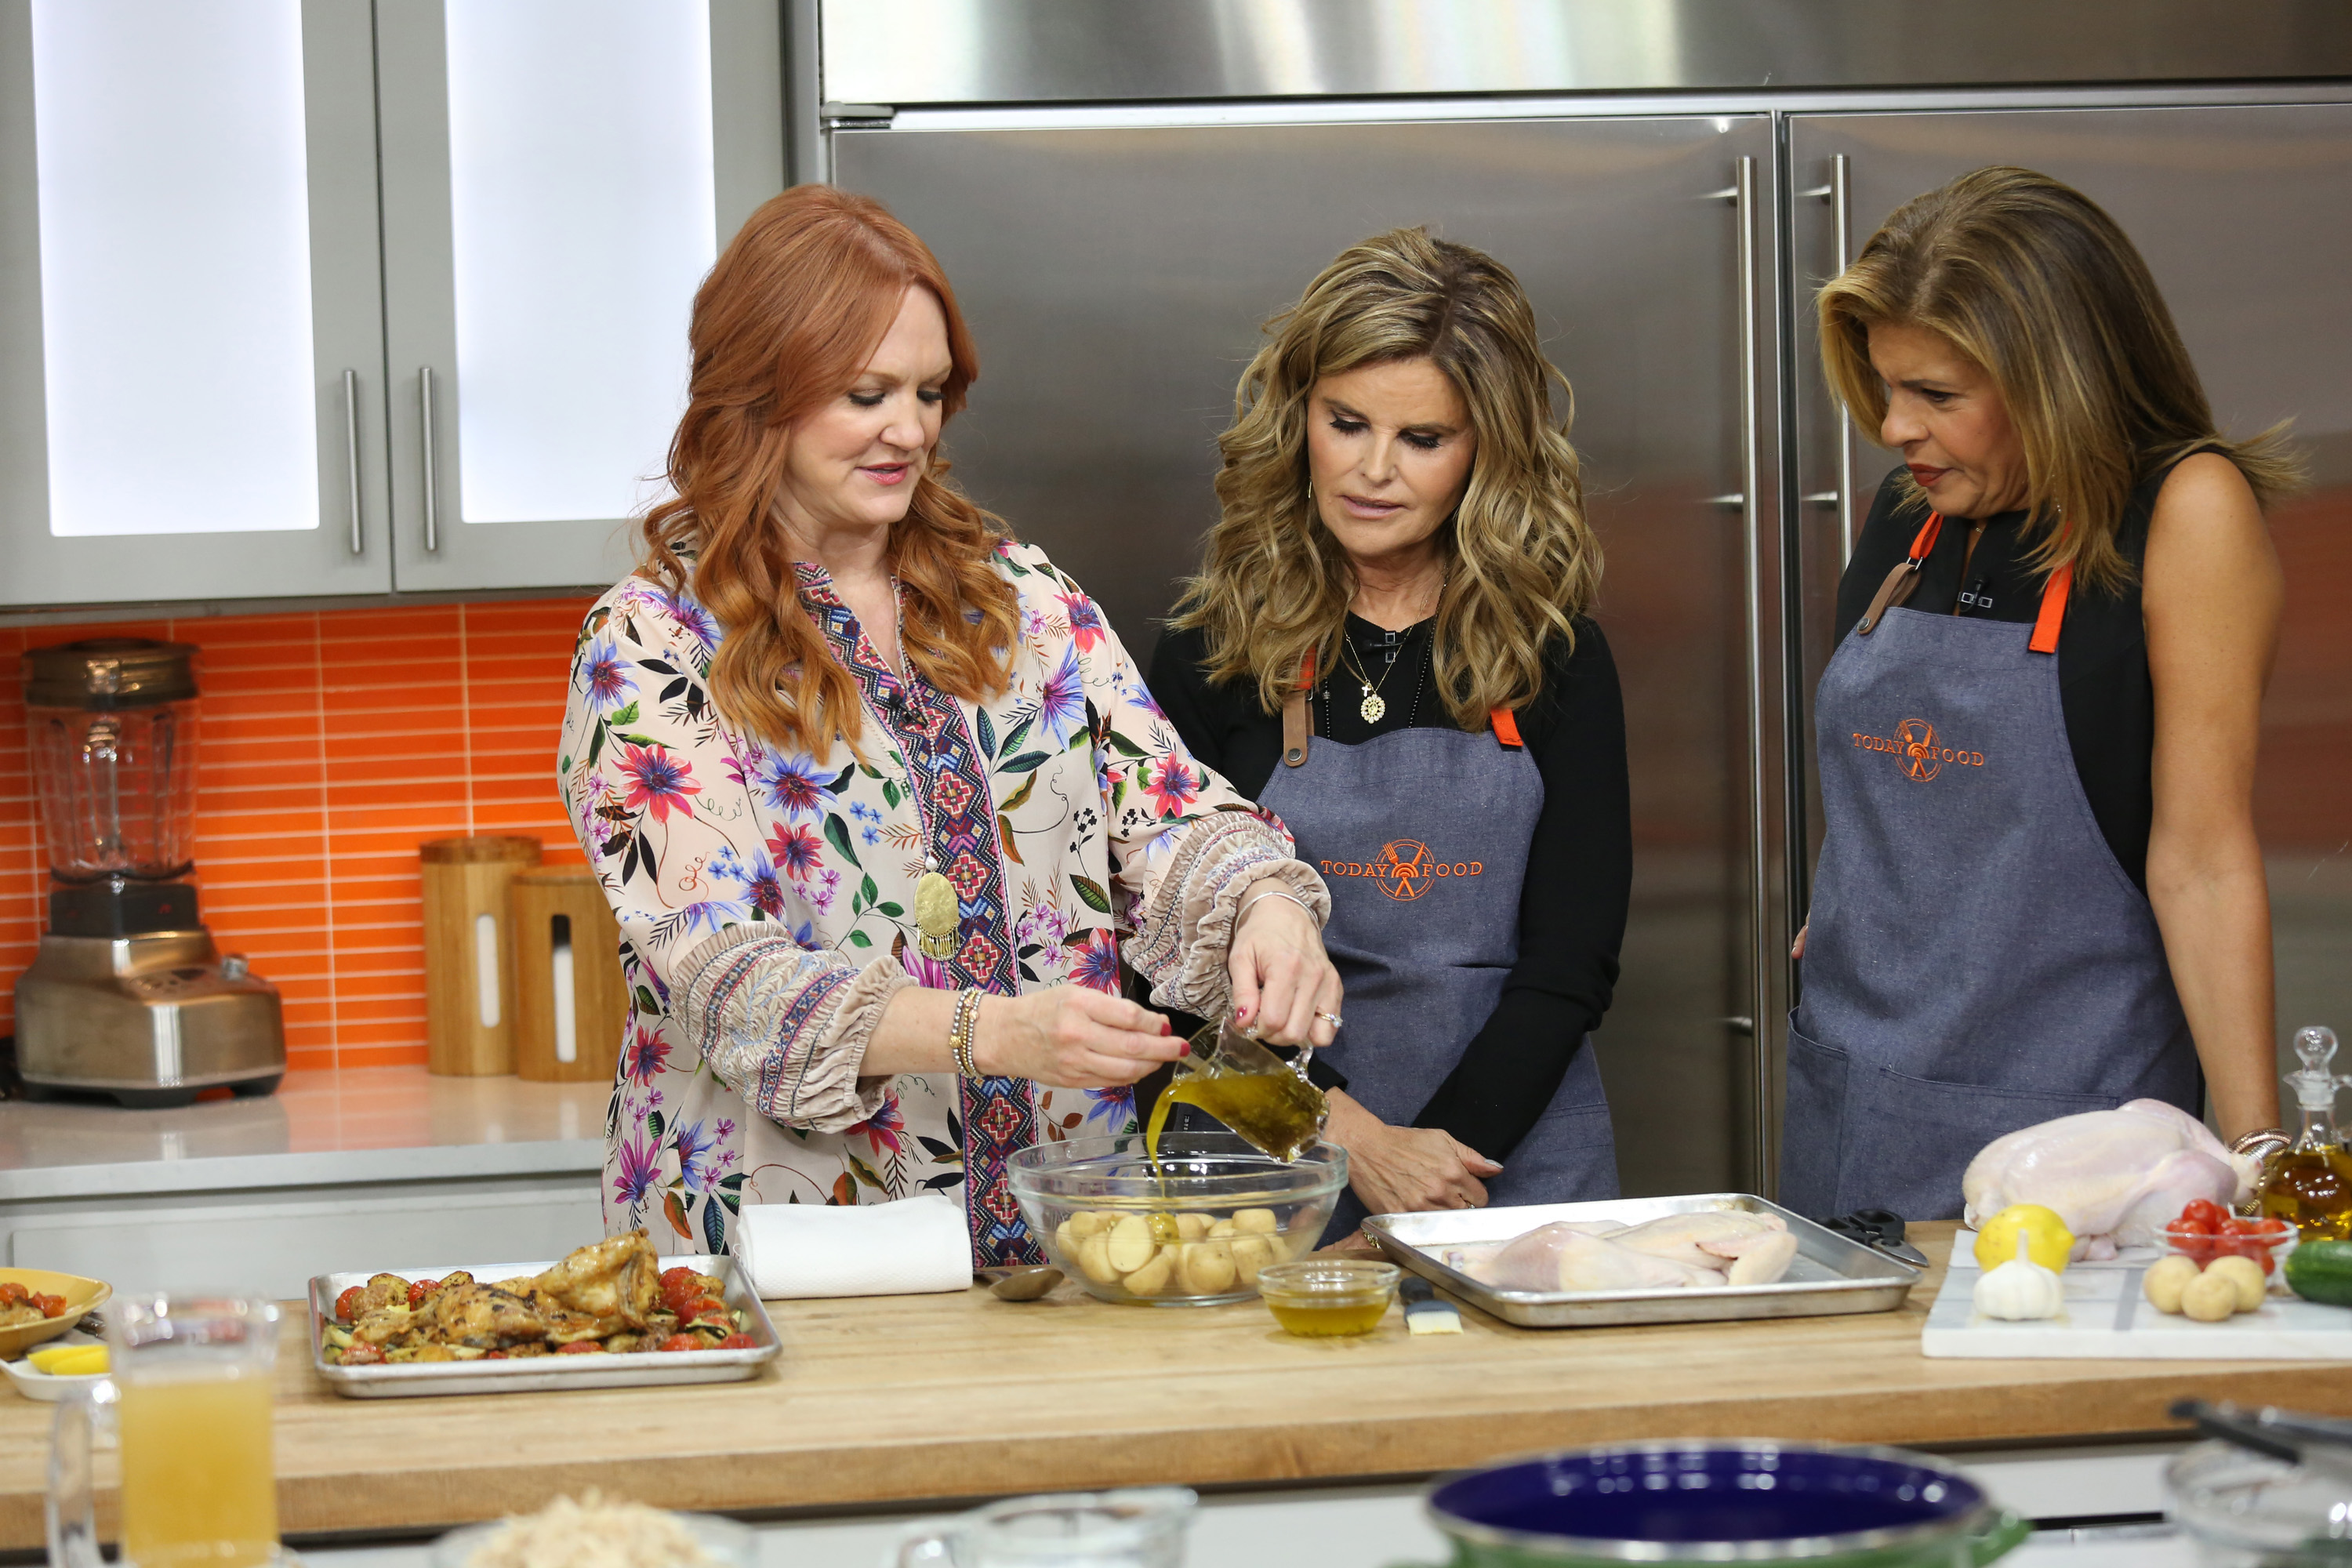 The Pioneer Woman Ree Drummond Cooks These 4 Recipes The Most For Her Family